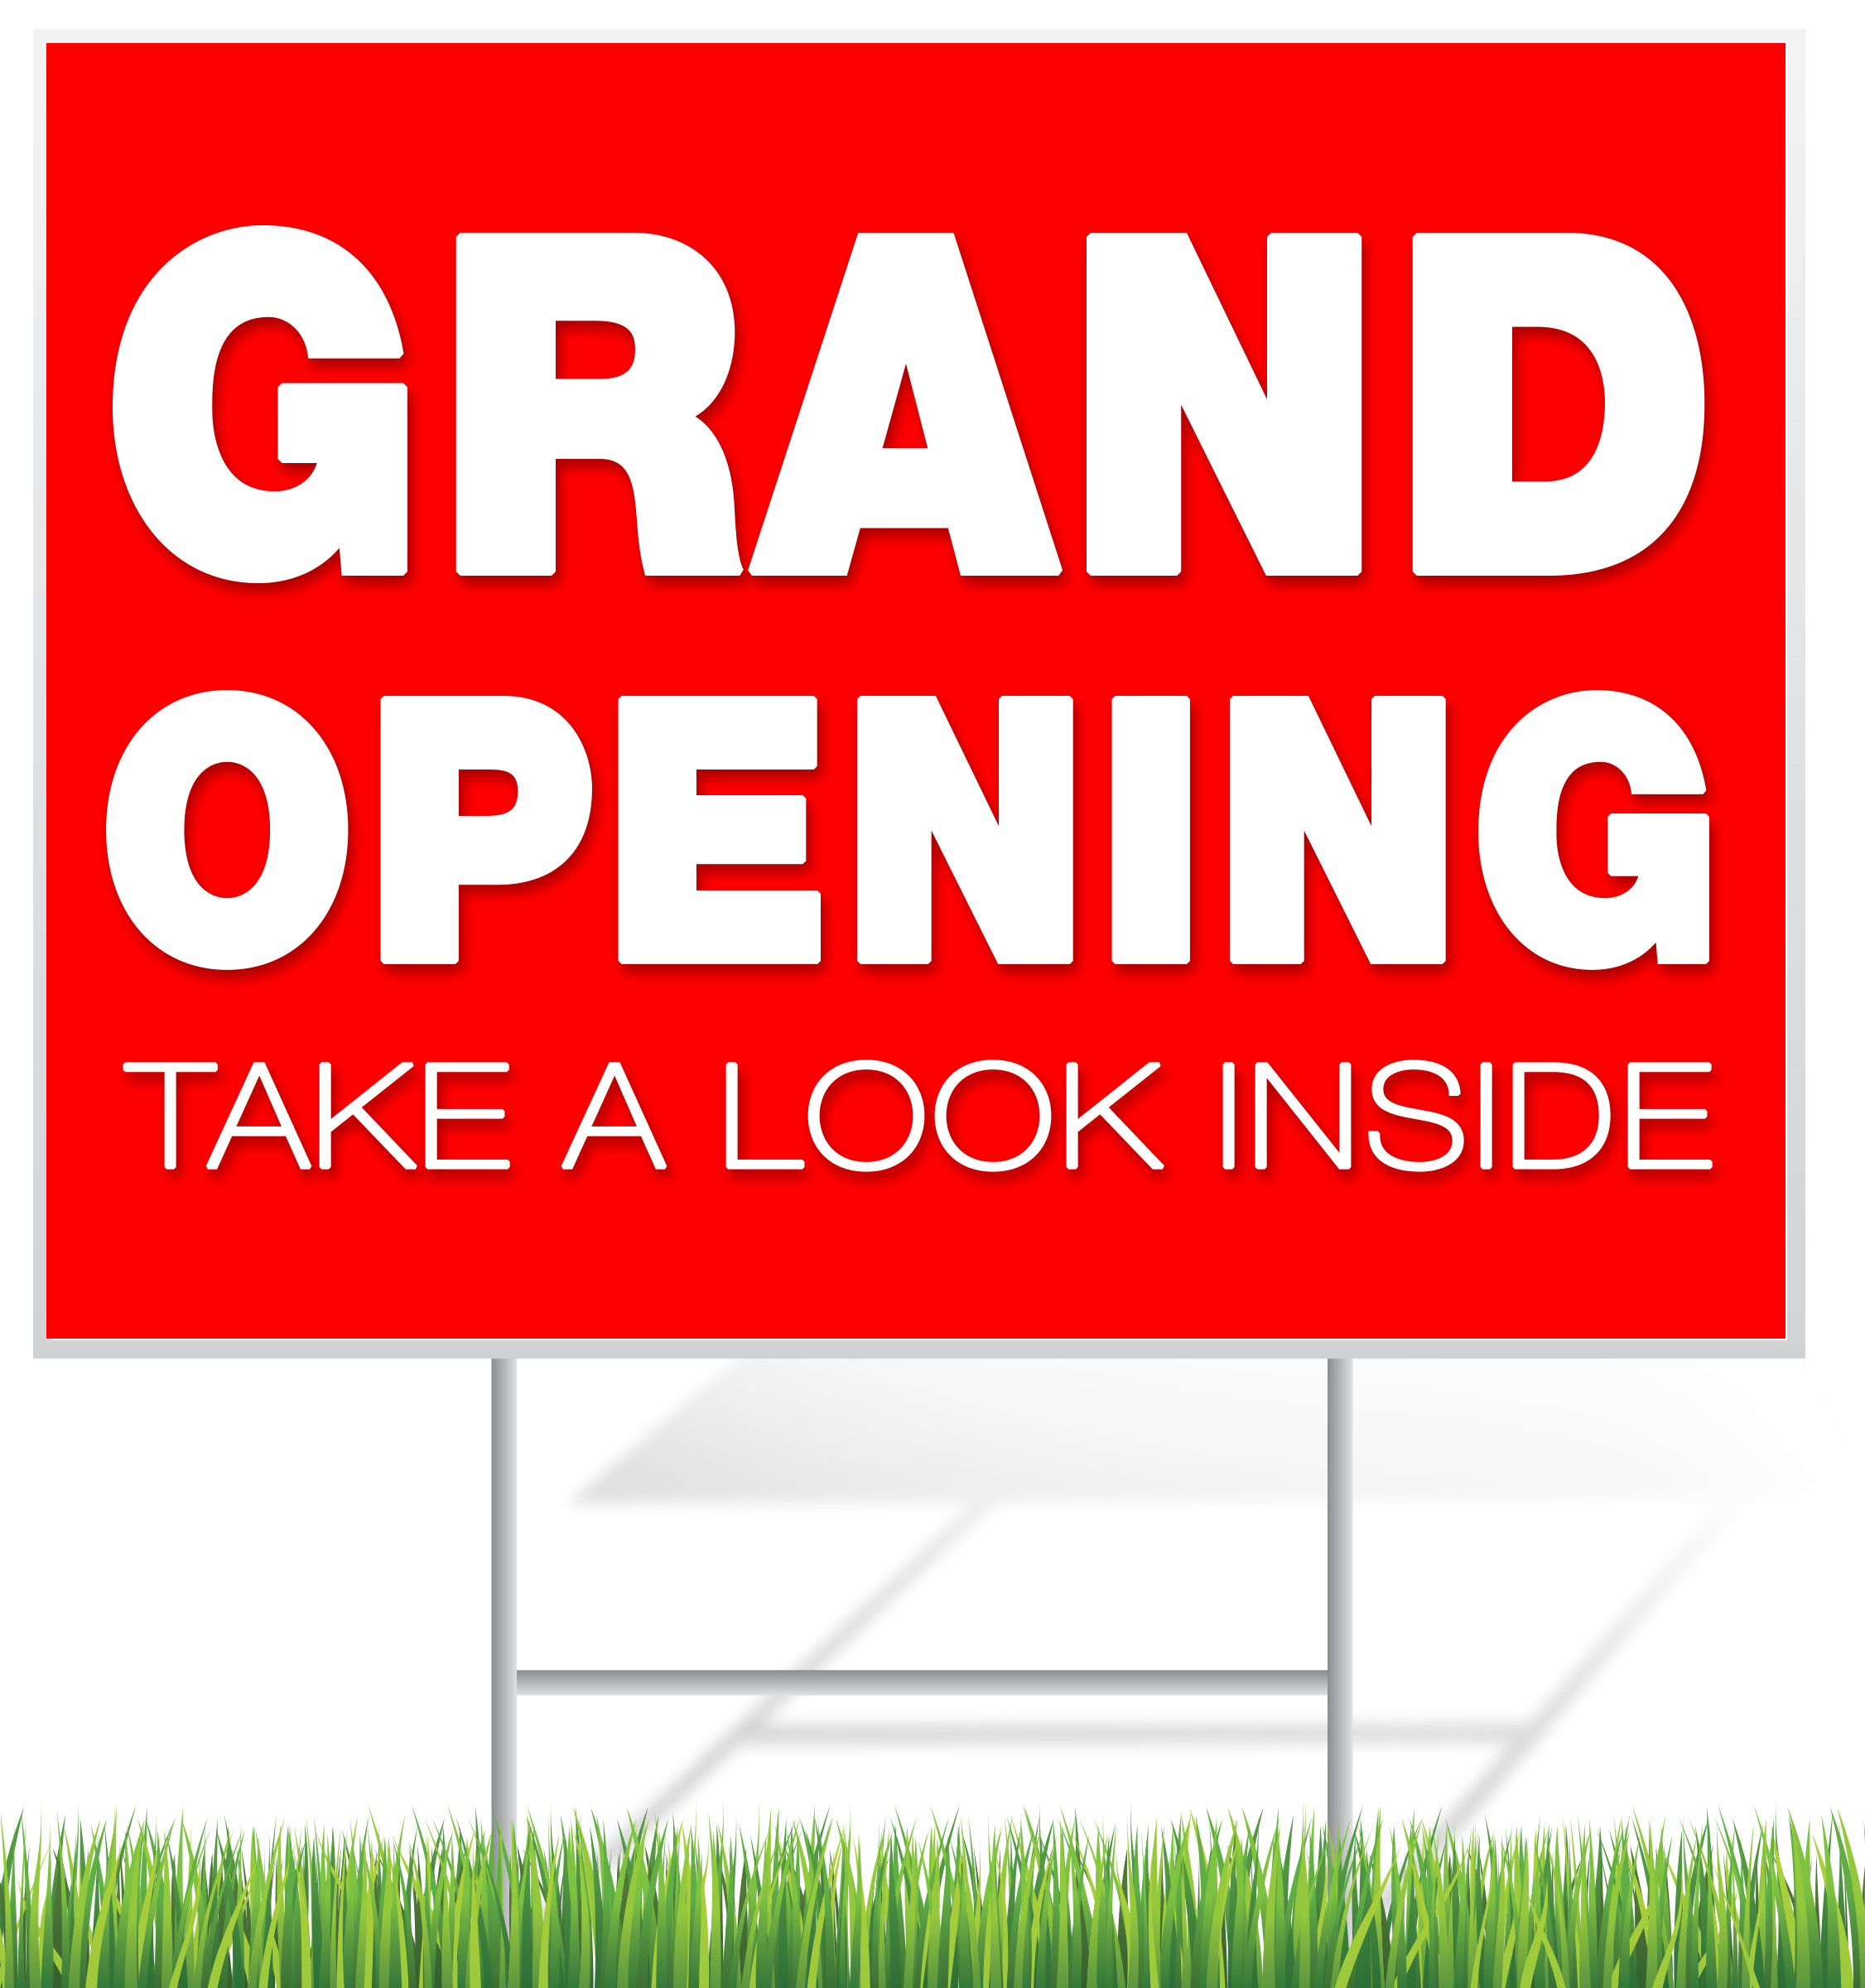 Grand Opening Lawn Sign Example | LawnSigns.com